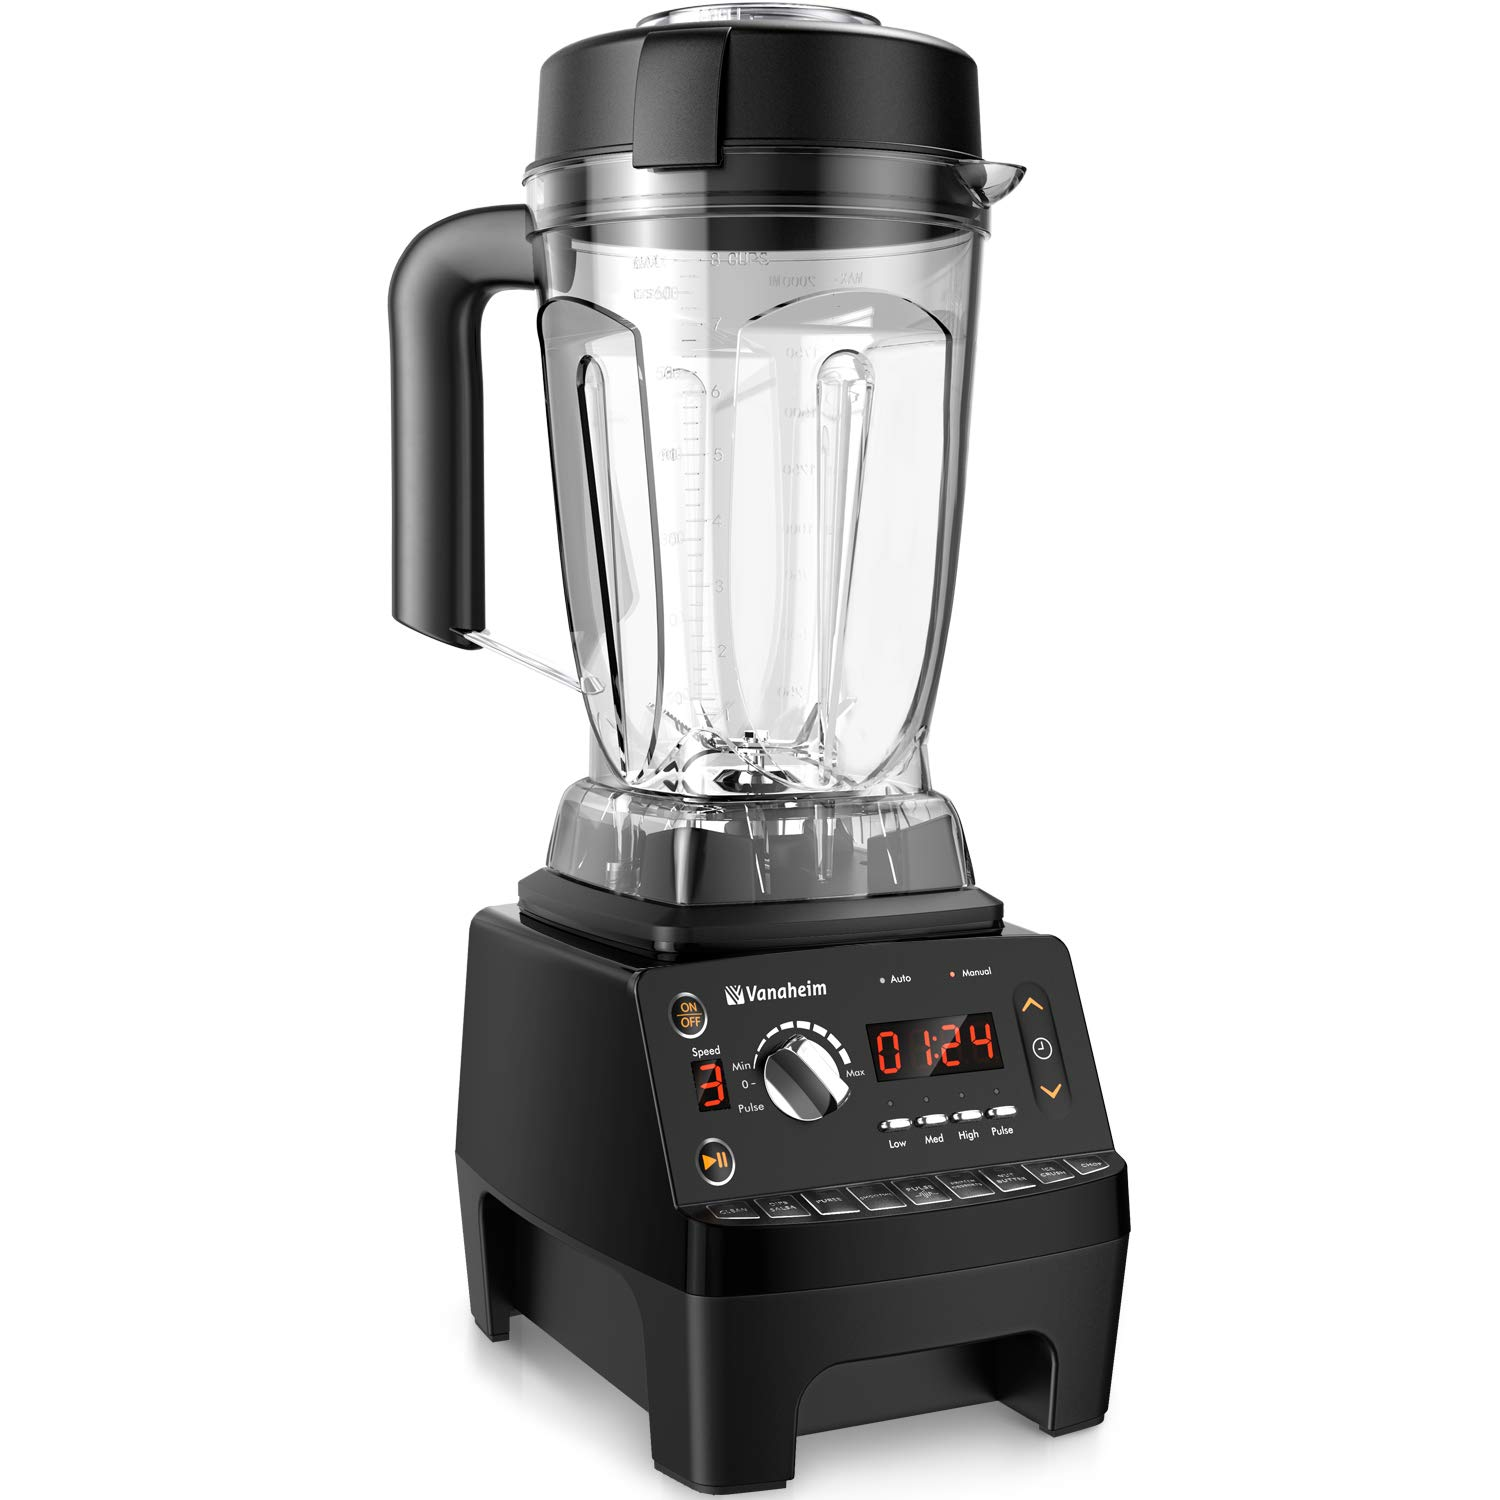 Vanaheim KB64 Professional Blender 1450W,64Oz Container,9 Programs,Variable Speed,Auto Clean,Powerful Stainless Steel Blade,Easily Crushing Ice,Smoothies,Juice